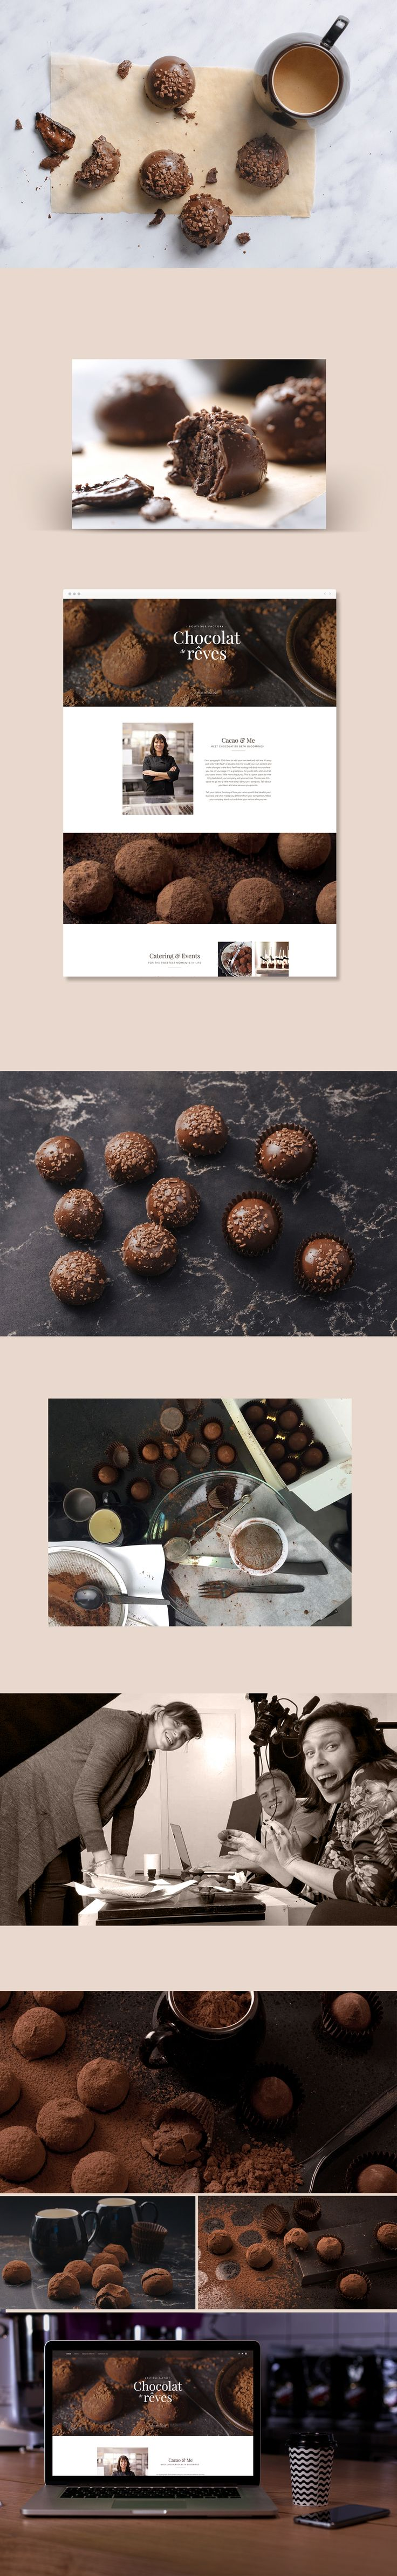 We strive to create original high quality content for our users. That means that we create a lot of photoshoots for our templates. This photoshoot was created for chocolatier template.